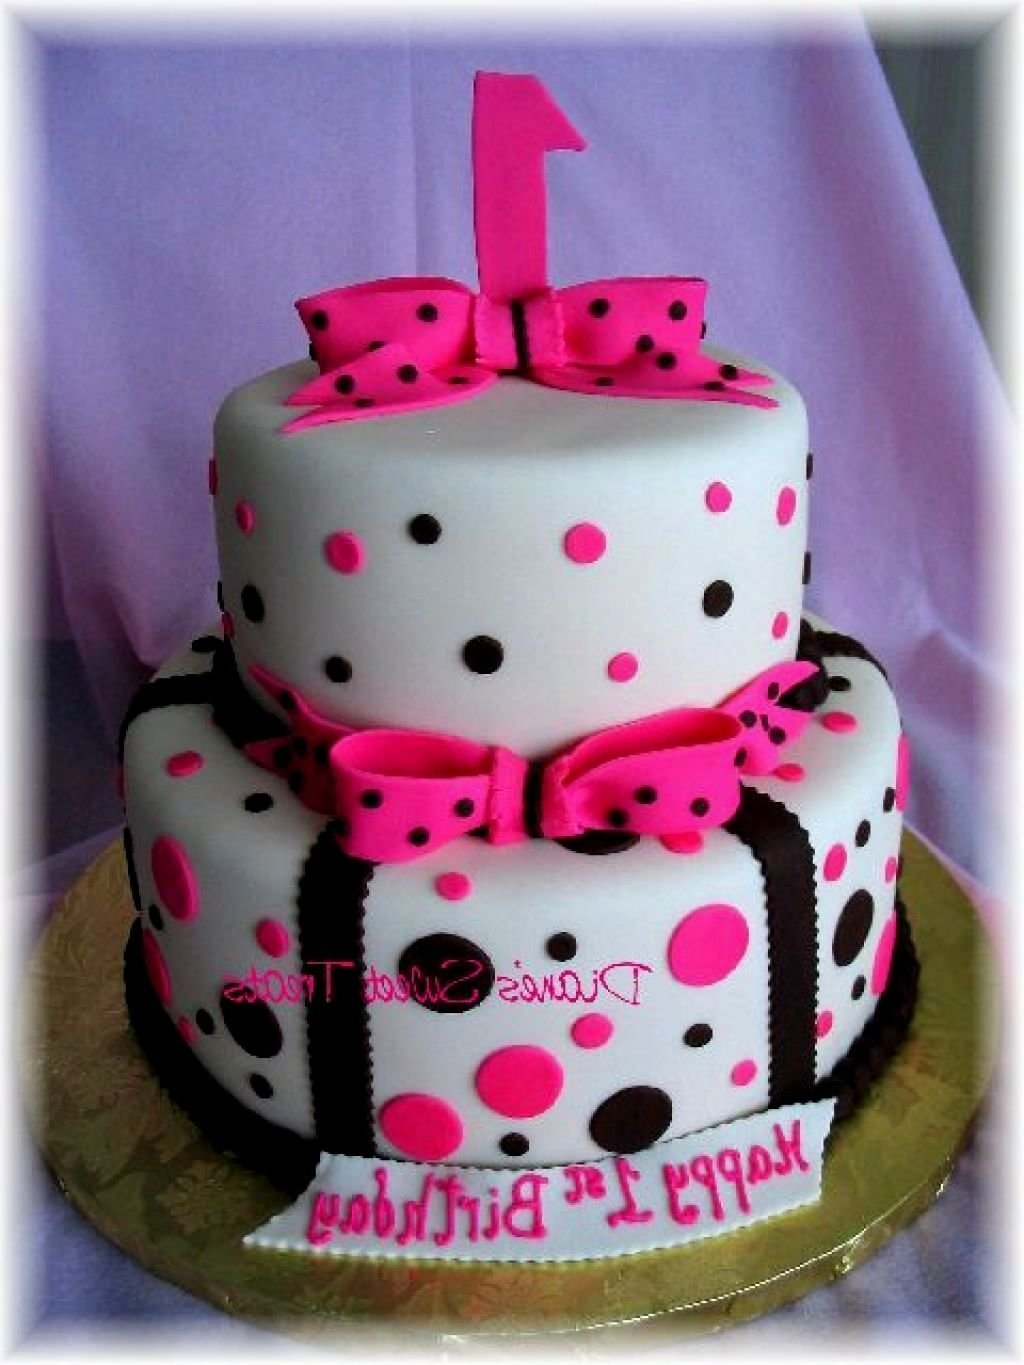 10 Beautiful 1St Birthday Cake Ideas For Girl 1st birthday cake designs for a girl archives decorating of party 2020